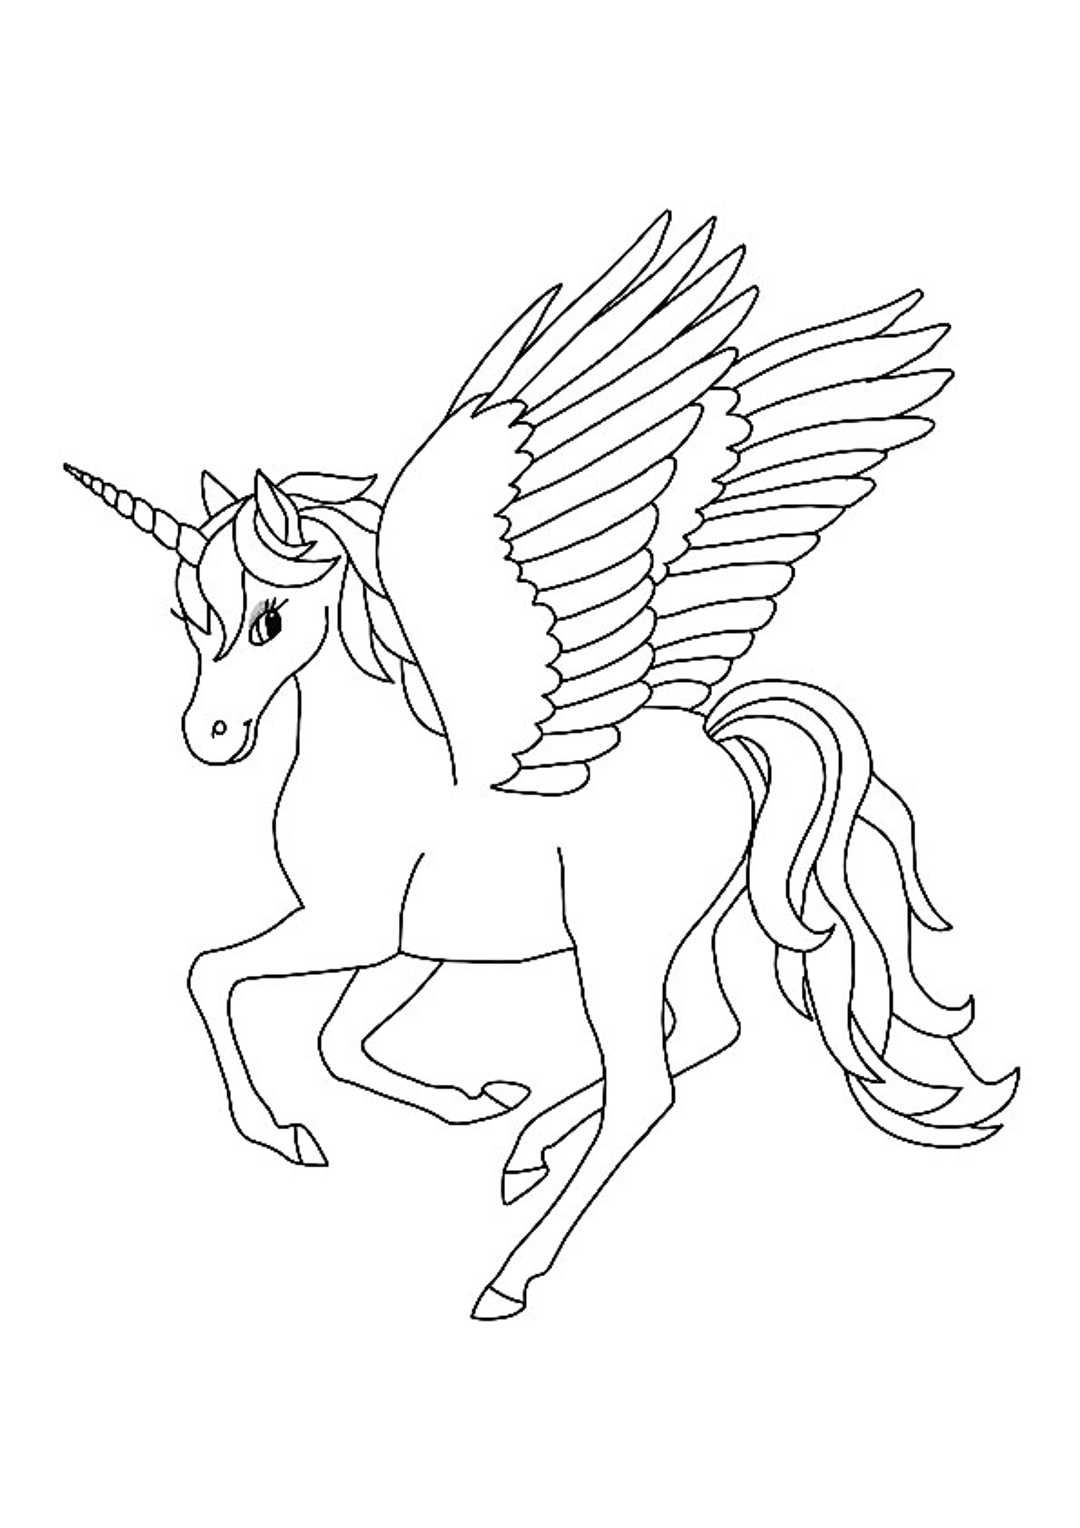 Winged Unicorn Coloring Pages in 2020 | Unicorn coloring ...